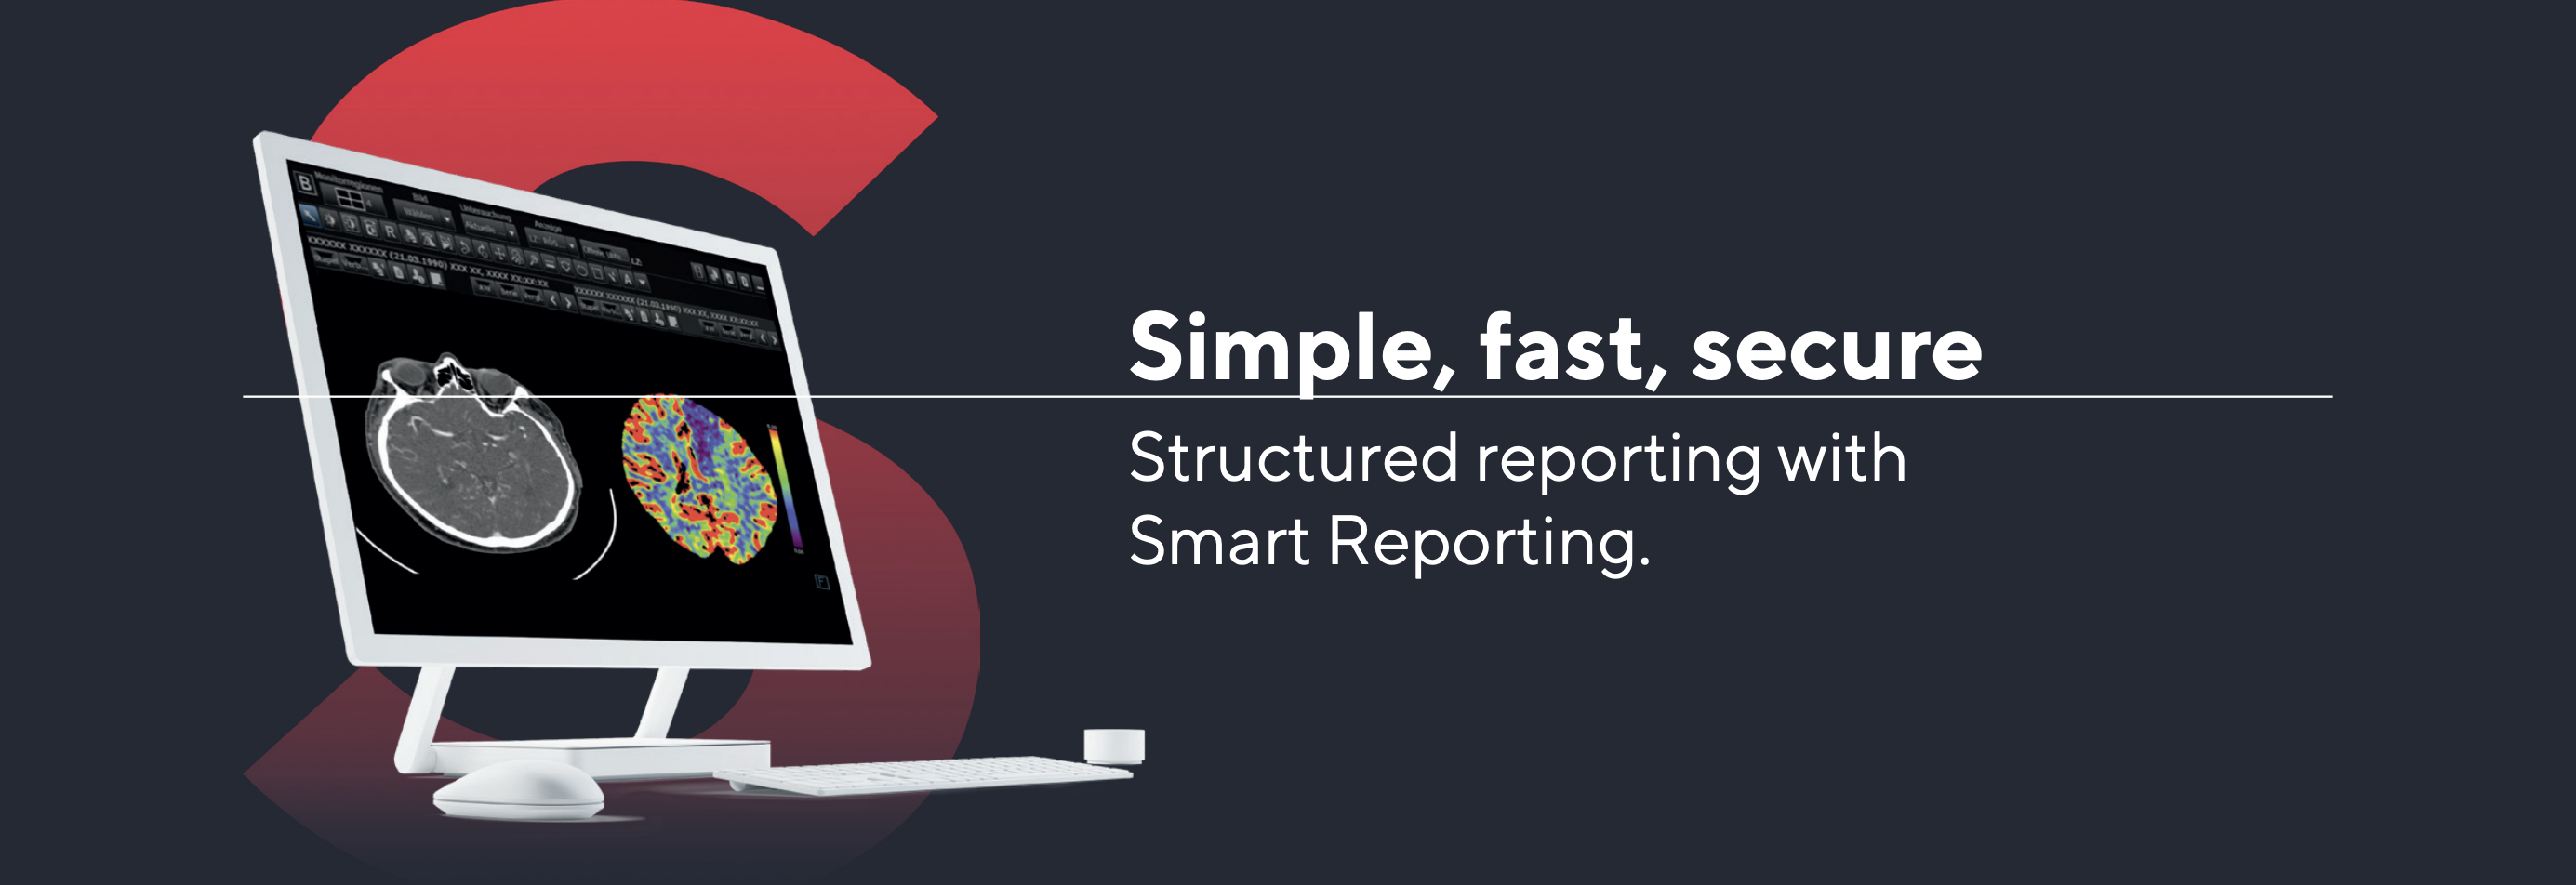 Simple fast secure, structured Reporting with Smart Reporting